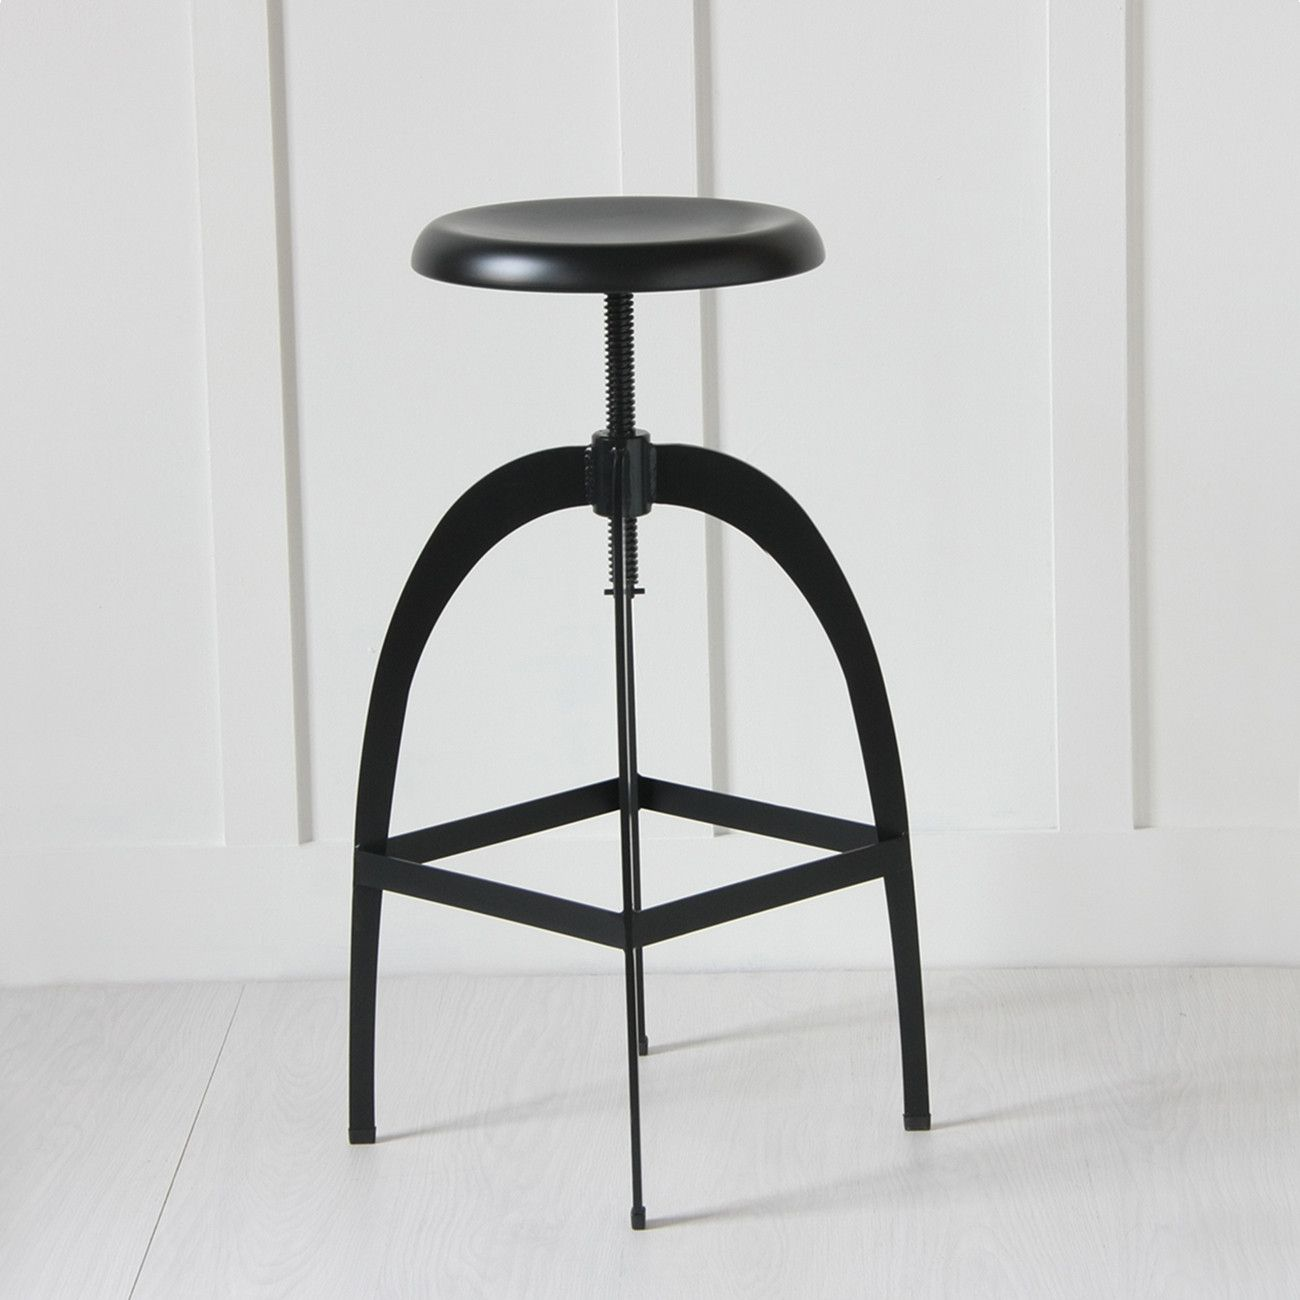 The Rocket Matt Black Metal Adjustable Bar Kitchen Counter Stool Bar Stools White Kitchen Bar Stools Kitchen Counter Stools